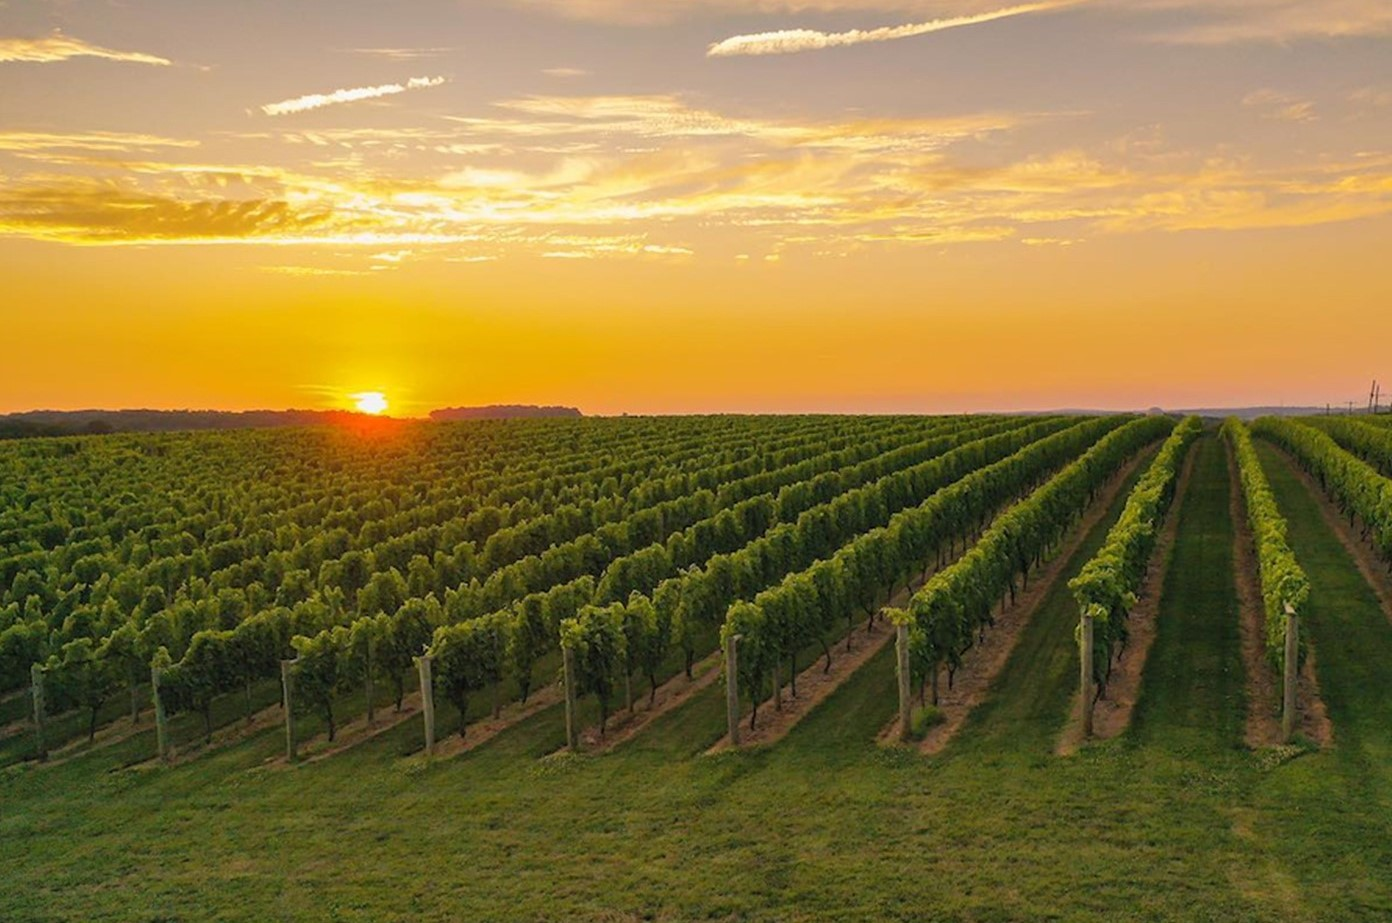 Going Vineyard Hopping This Fall? According to Experts, Southern Chester County Is the Place to Be